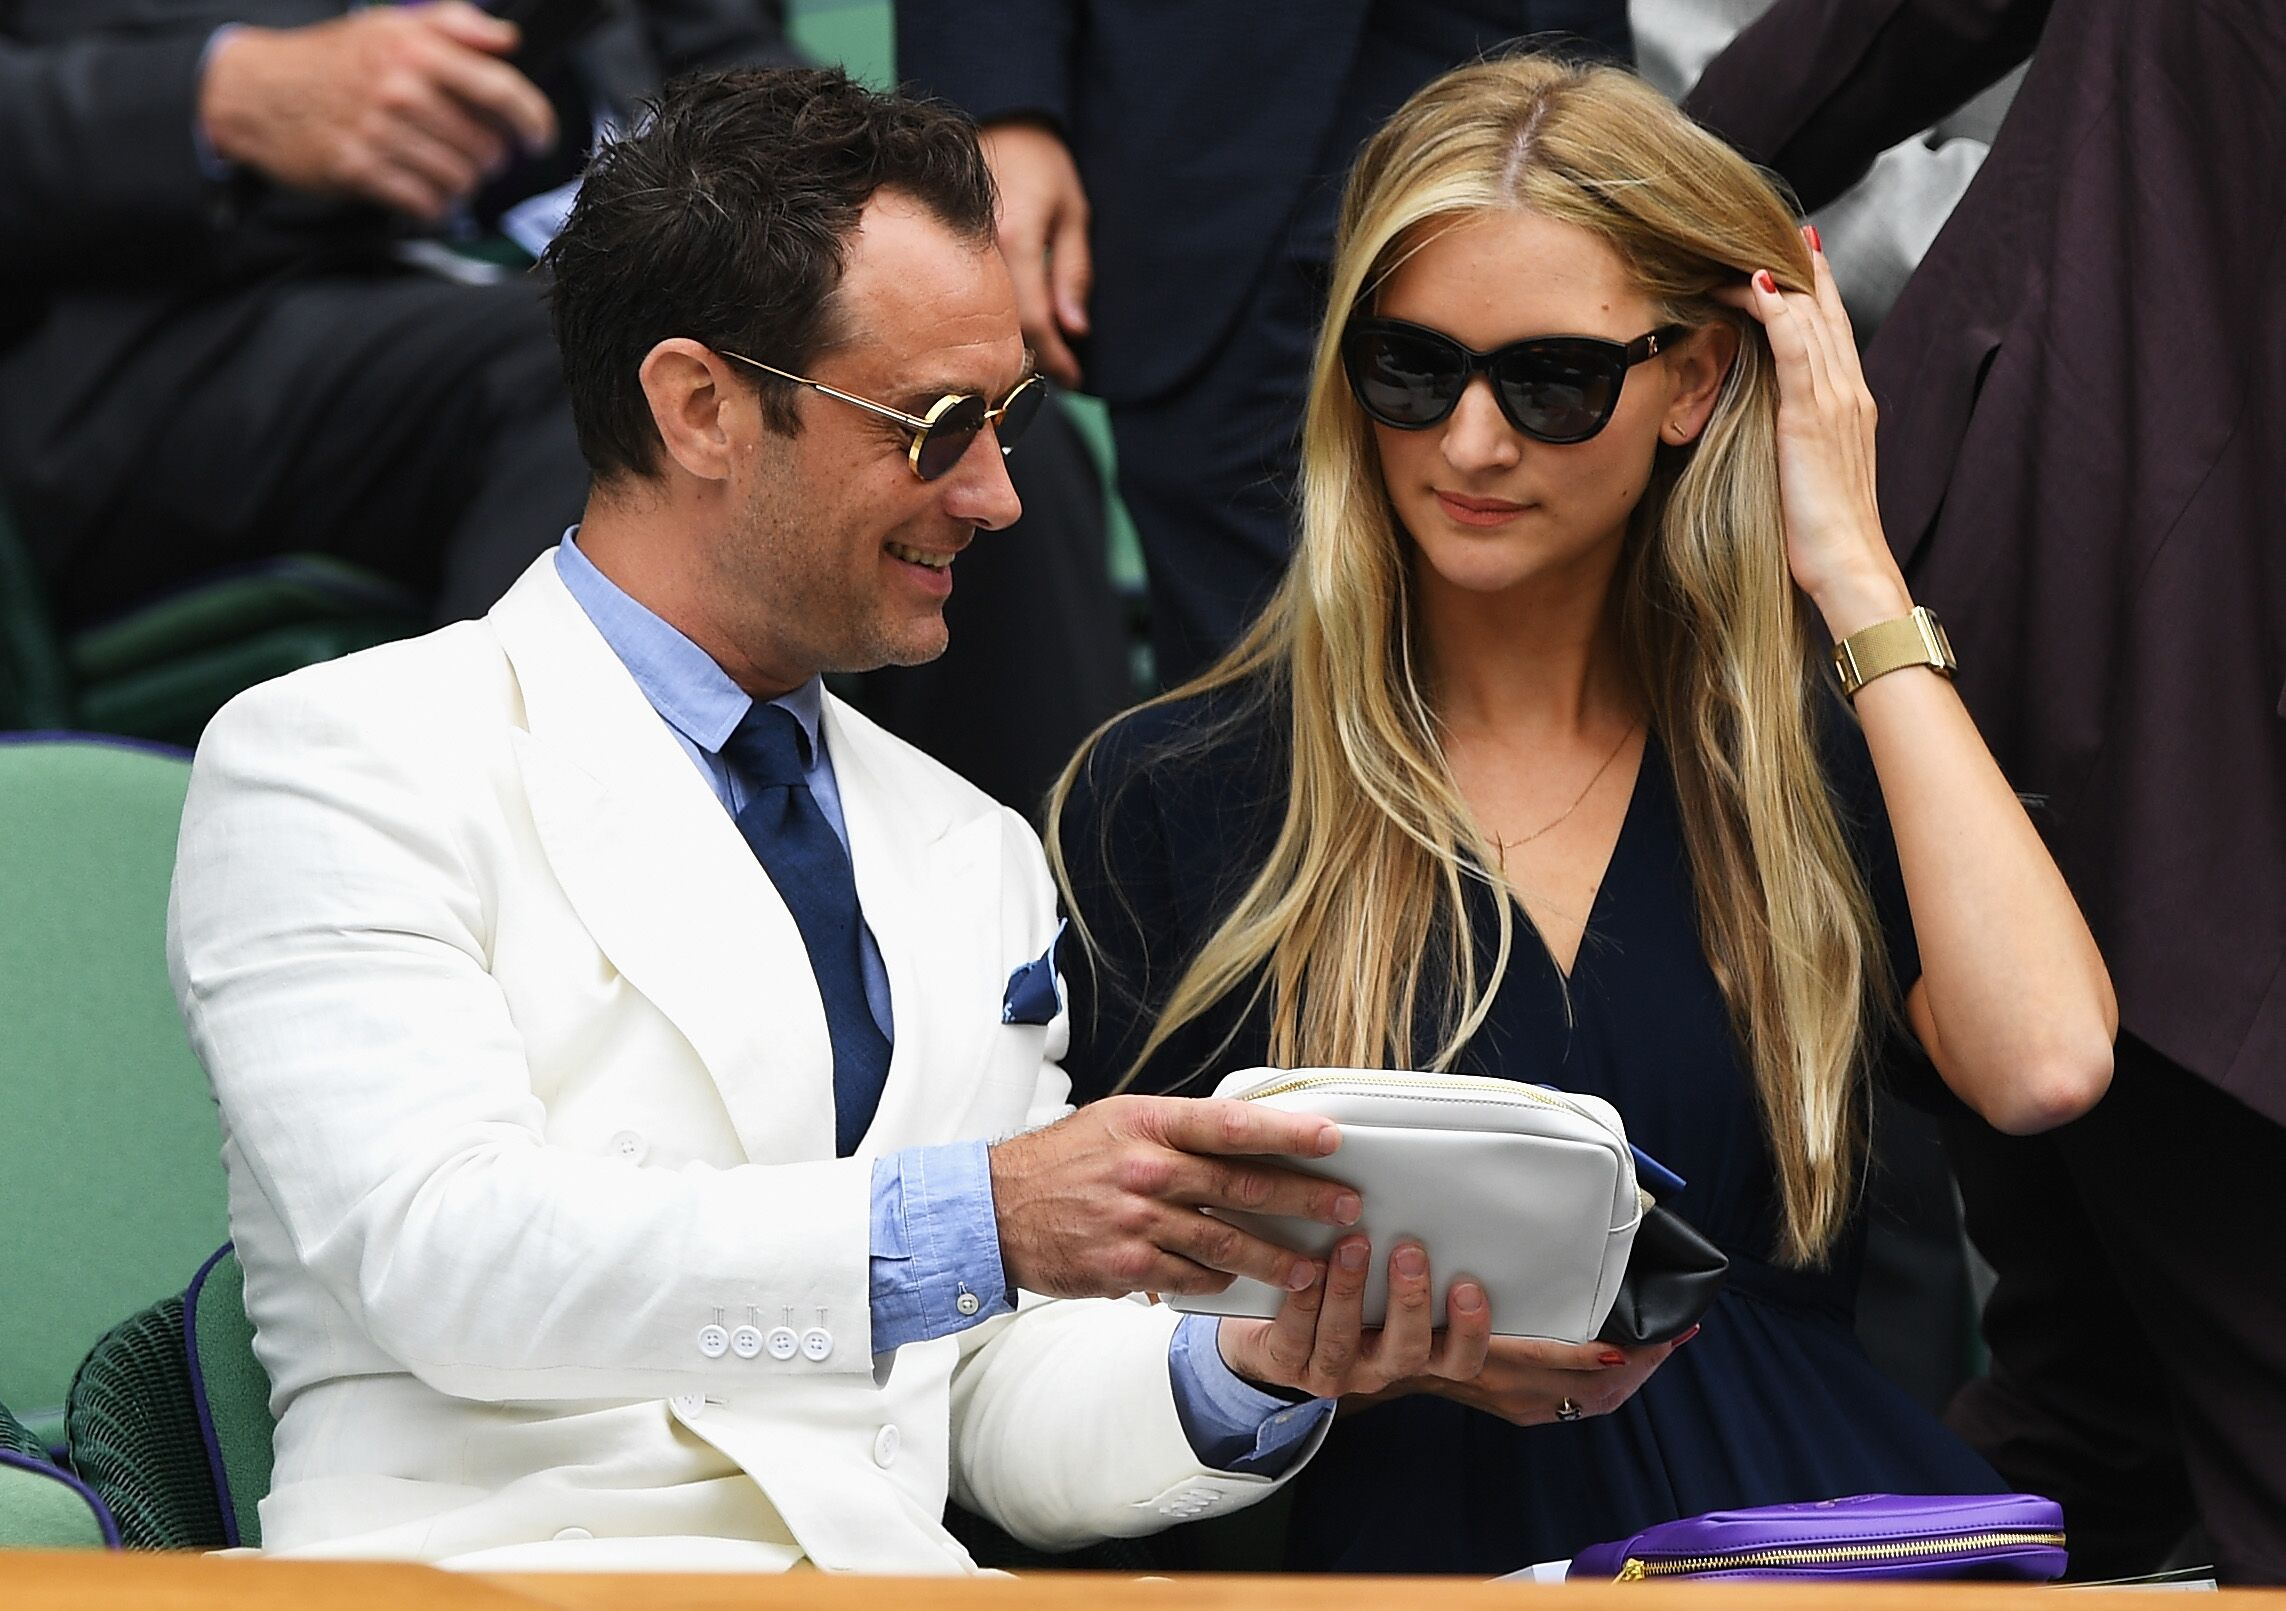 Jude Law and Phillipa Coan watch on as Roger Federer of Switzerland plays Milos Raonic of Canada in the Men's Singles Semi Final match on day eleven of the Wimbledon Lawn Tennis Championships at the All England Lawn Tennis and Croquet Club on July 8, 2016 in London, England. | Photo: Getty Images